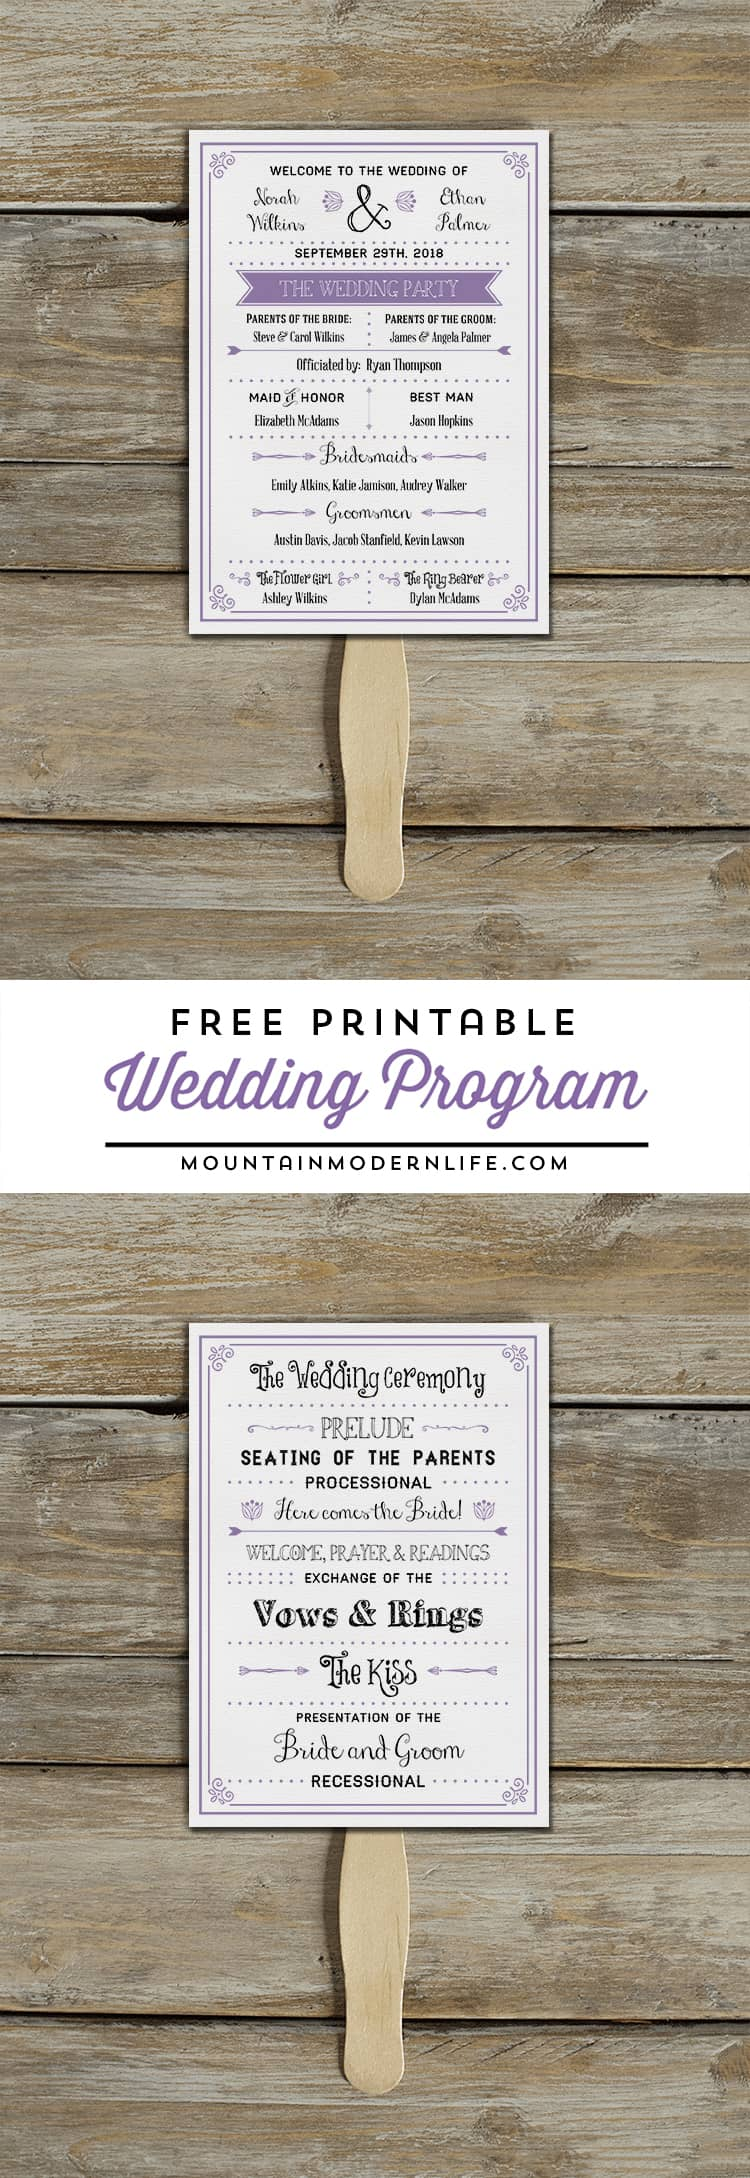 Planning a rustic or vintage-inspired wedding? Download this FREE Printable Wedding Program that doubles as a fan! MountainModernLife.com